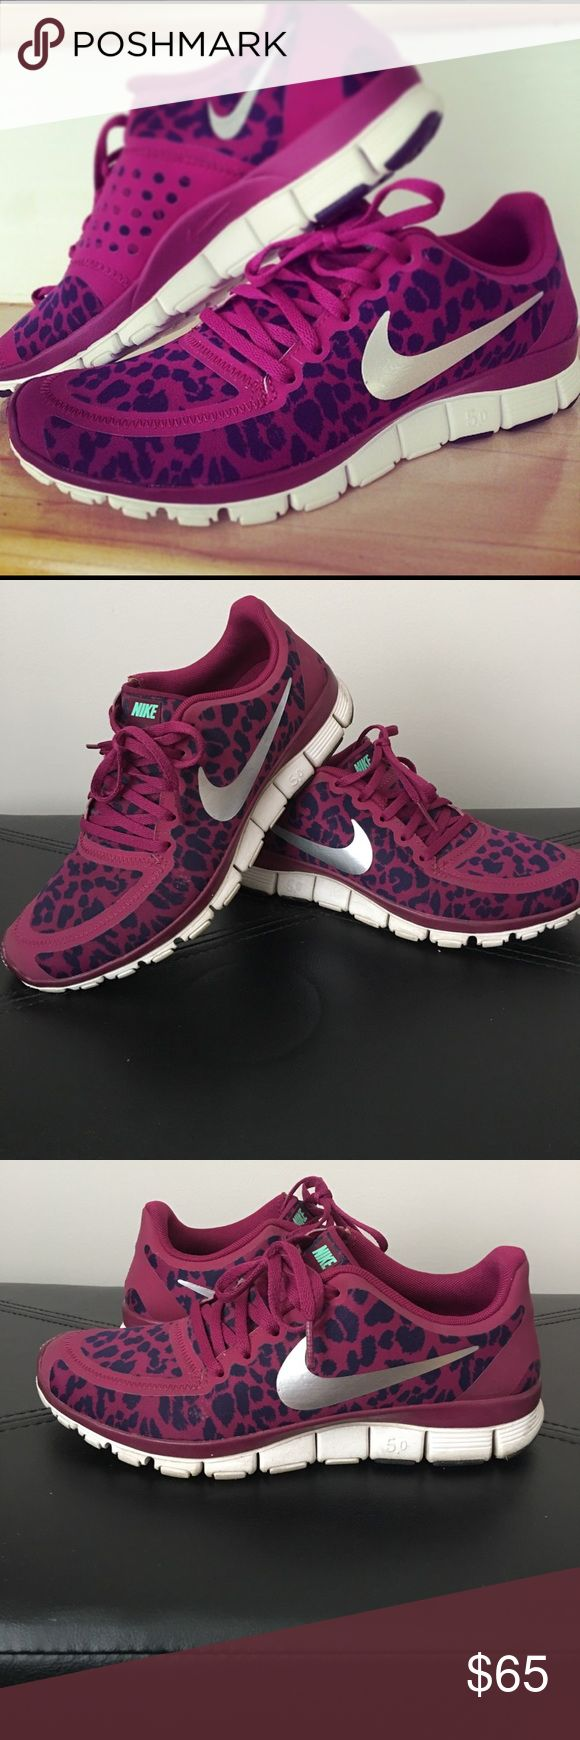 Nike leopard free run 5.0 sneakers Nike free run 5.0 sneakers. Fuchsia sneaker with purple leopard print. Silver Nike check. Runs half size small. Nike Shoes Sneakers